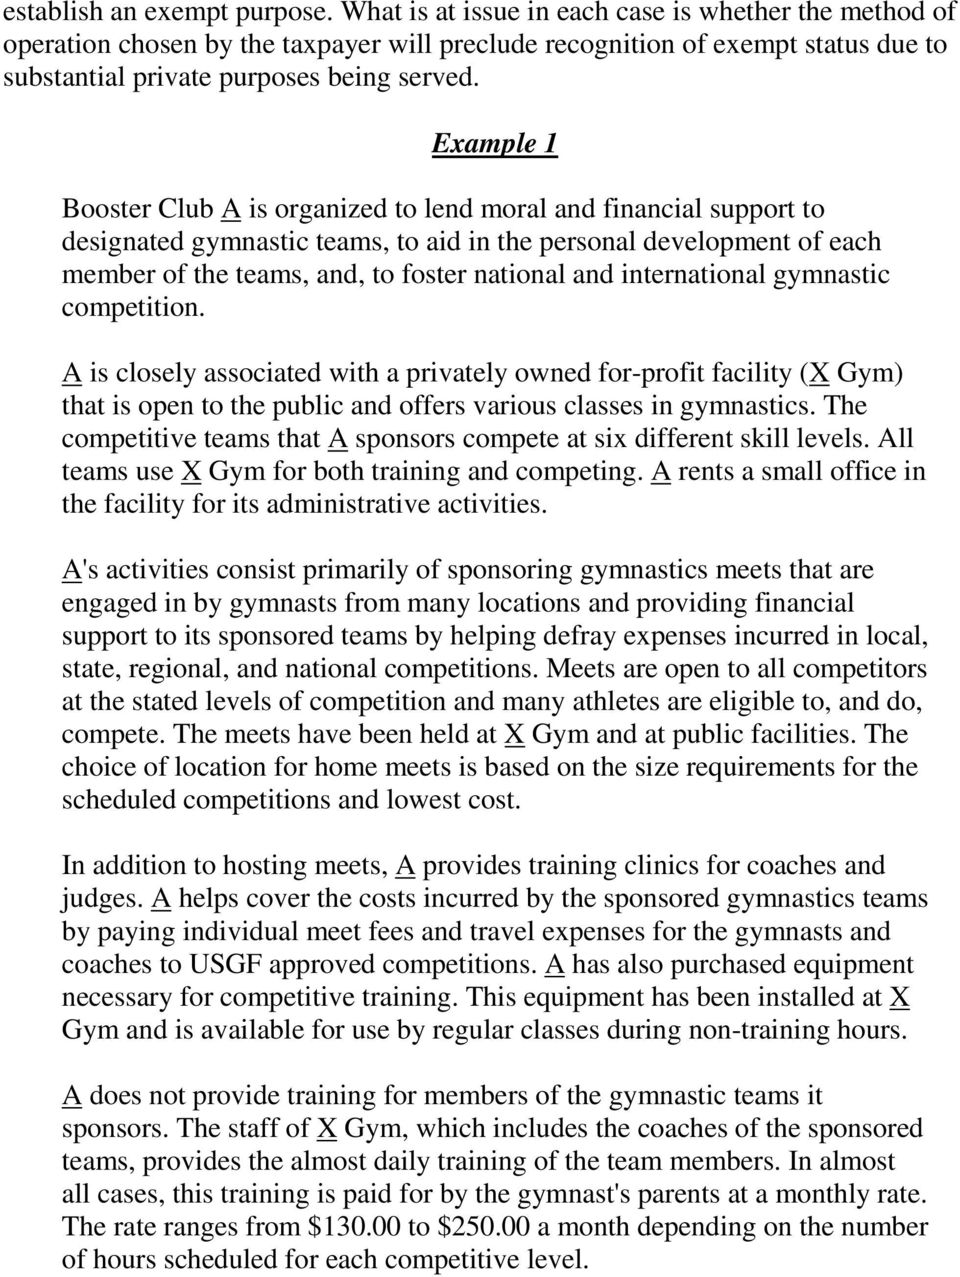 Example 1 Booster Club A is organized to lend moral and financial support to designated gymnastic teams, to aid in the personal development of each member of the teams, and, to foster national and